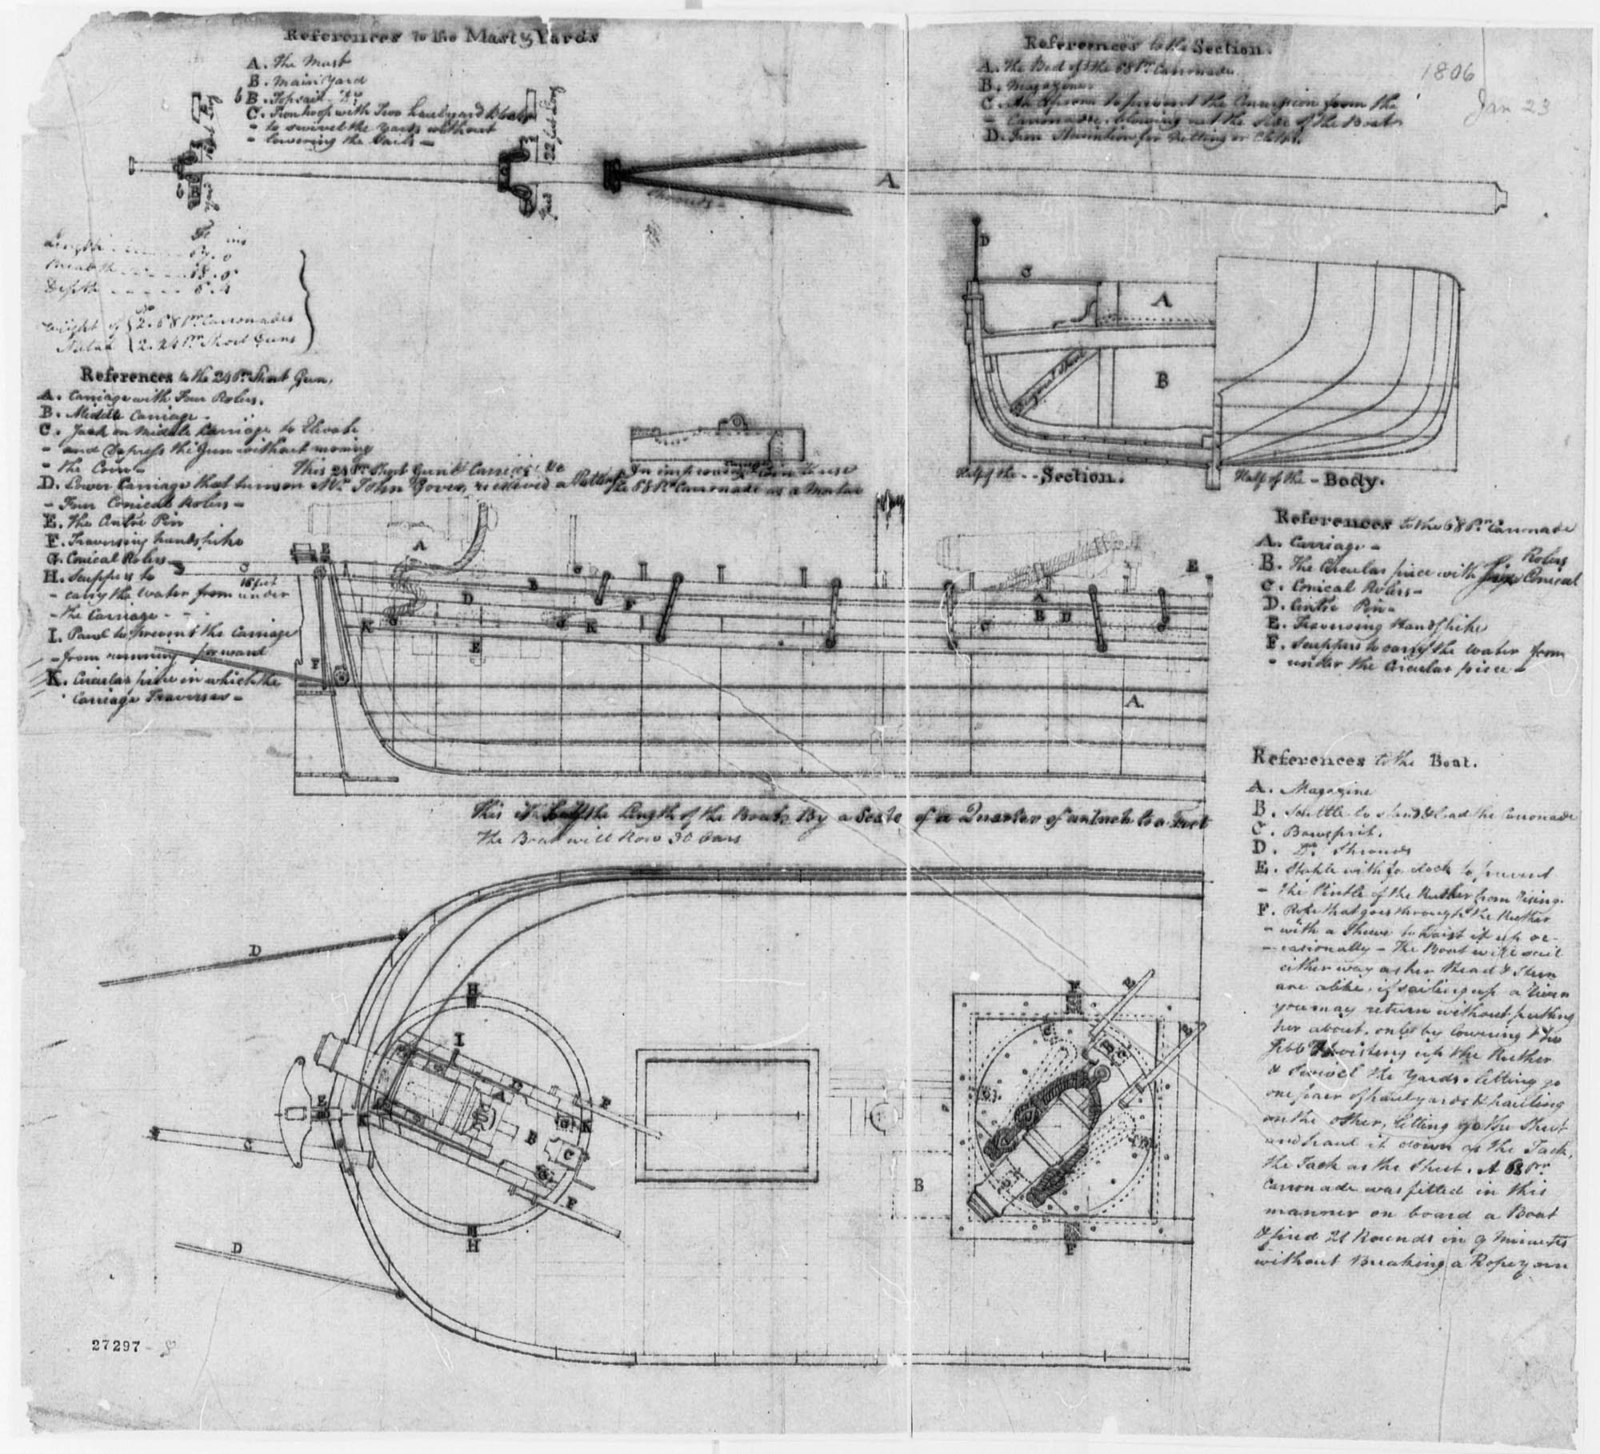 Navy Department, January 23, 1806, Drawing of Gunboat